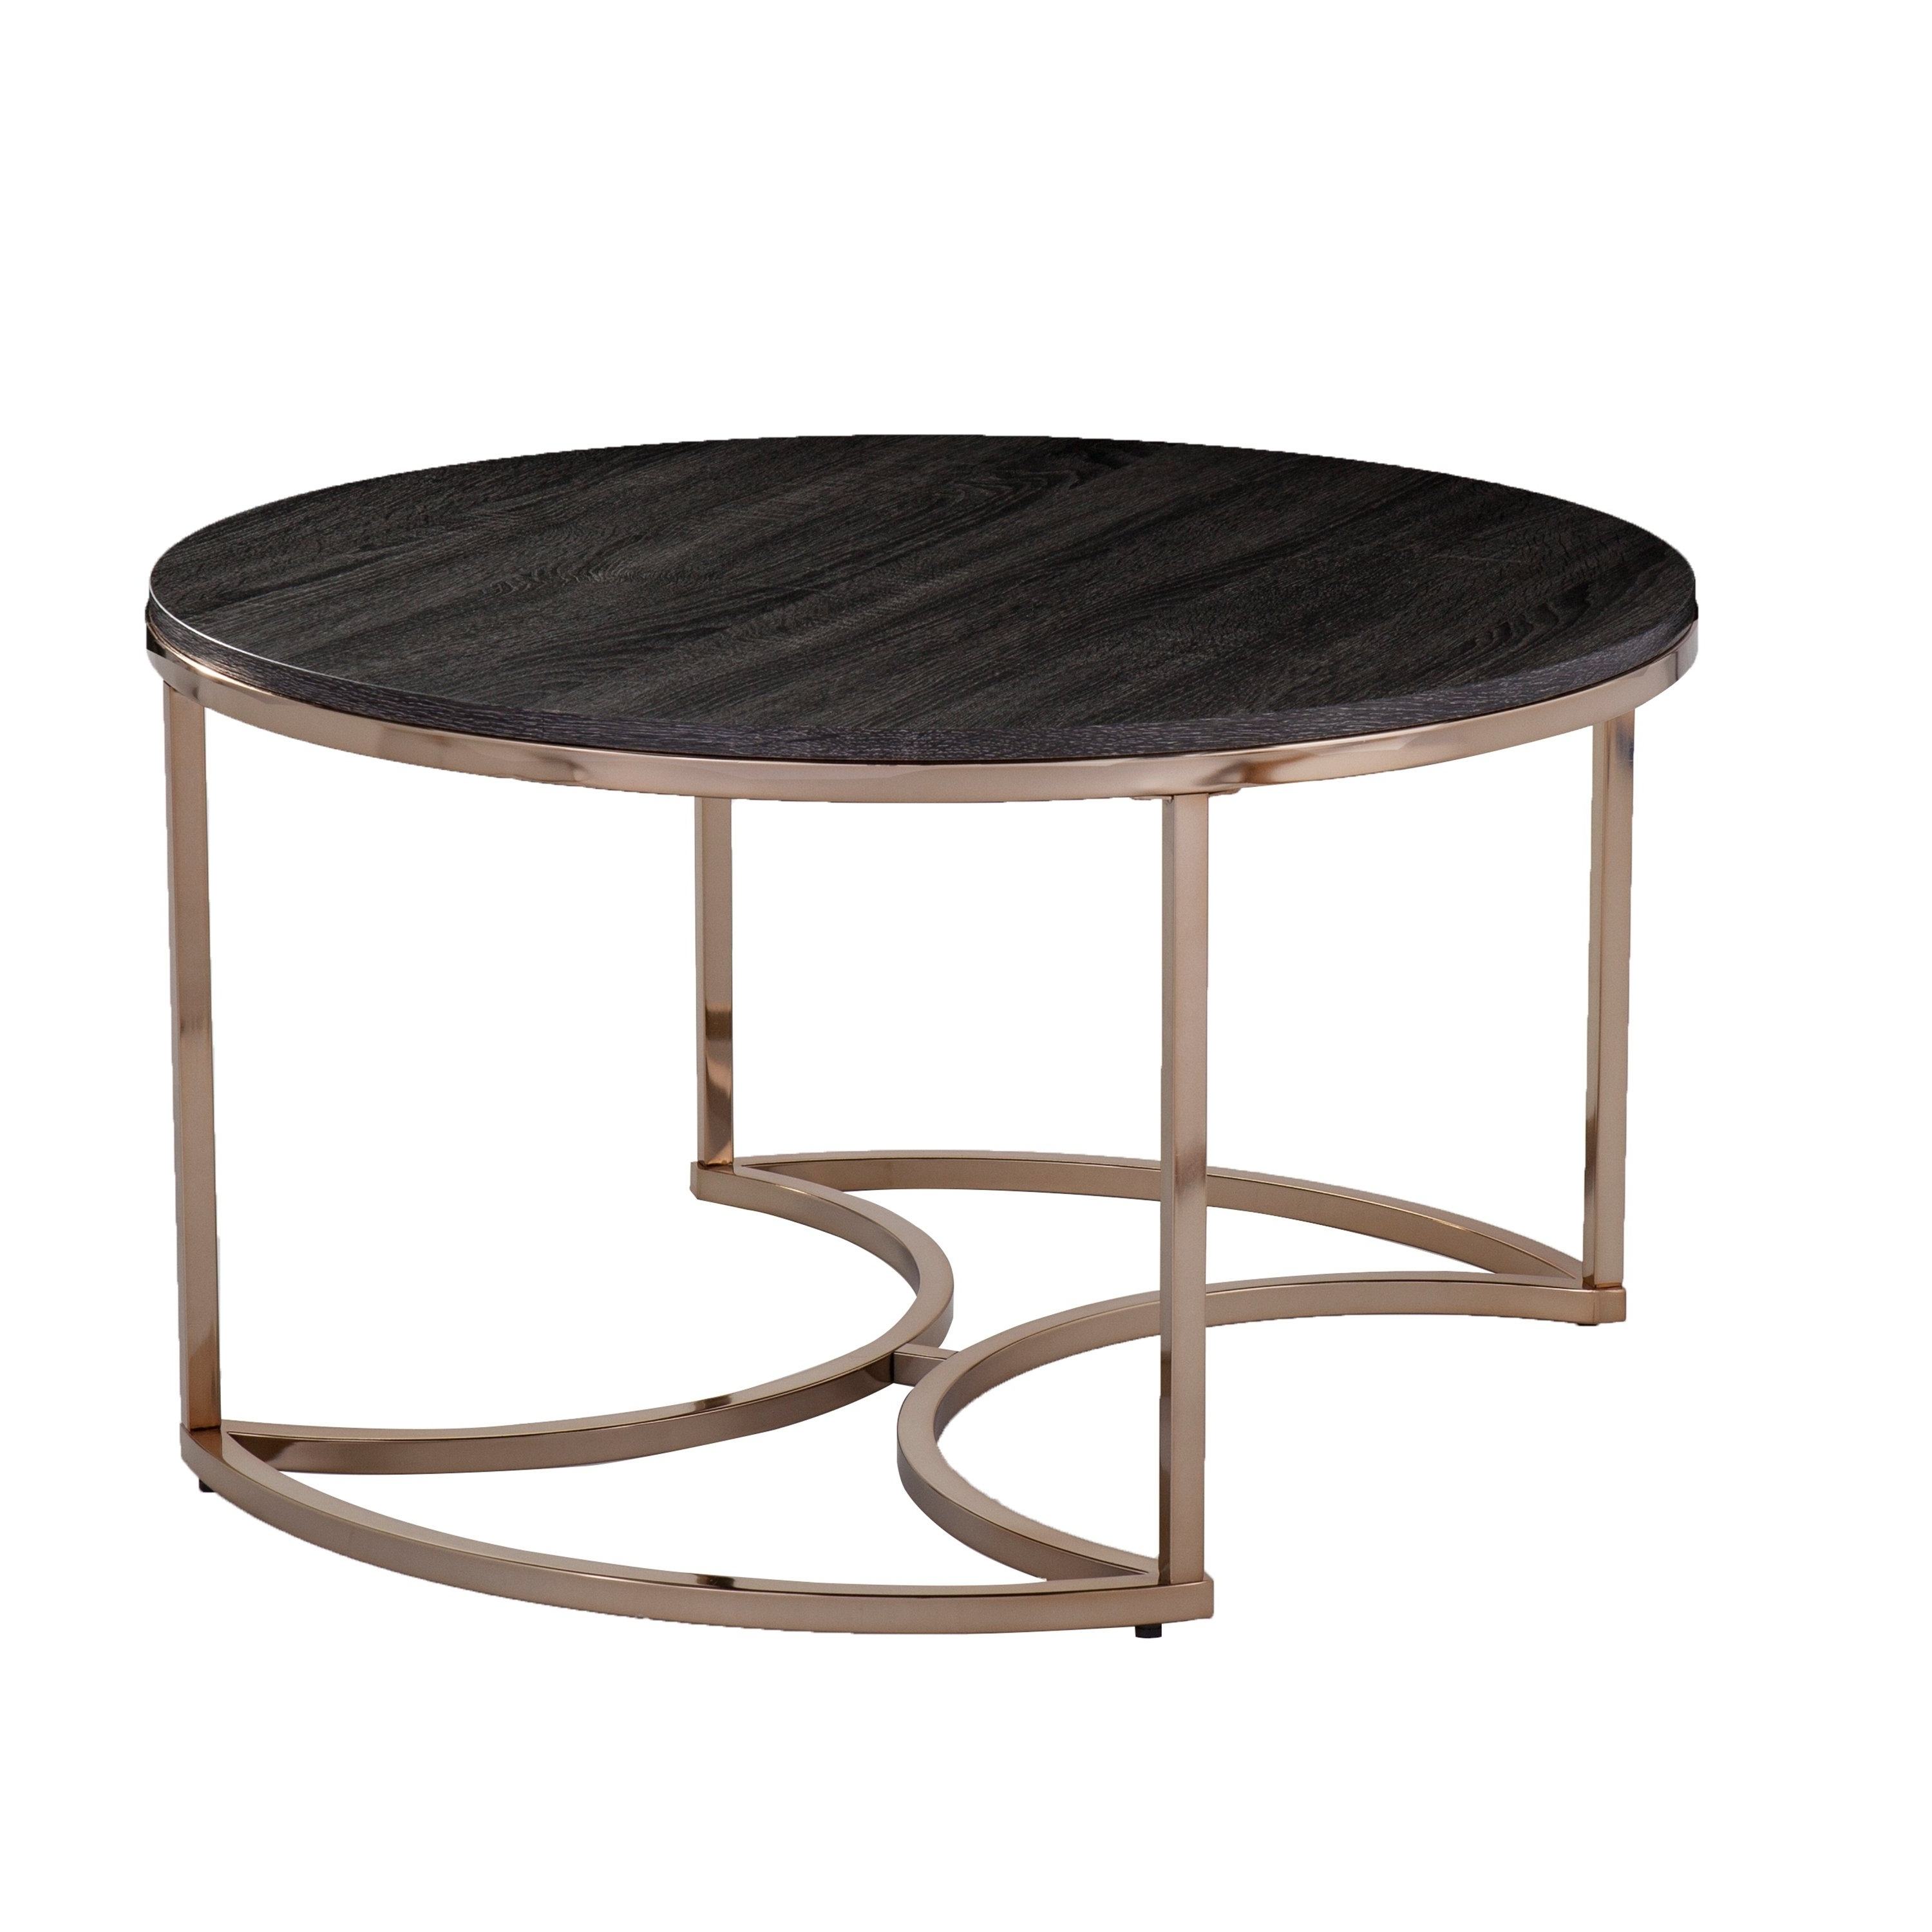 Shop Harper Blvd Belle Round Nesting Coffee Tables – 3Pc Set – Free Within Well Known Set Of Nesting Coffee Tables (View 15 of 20)